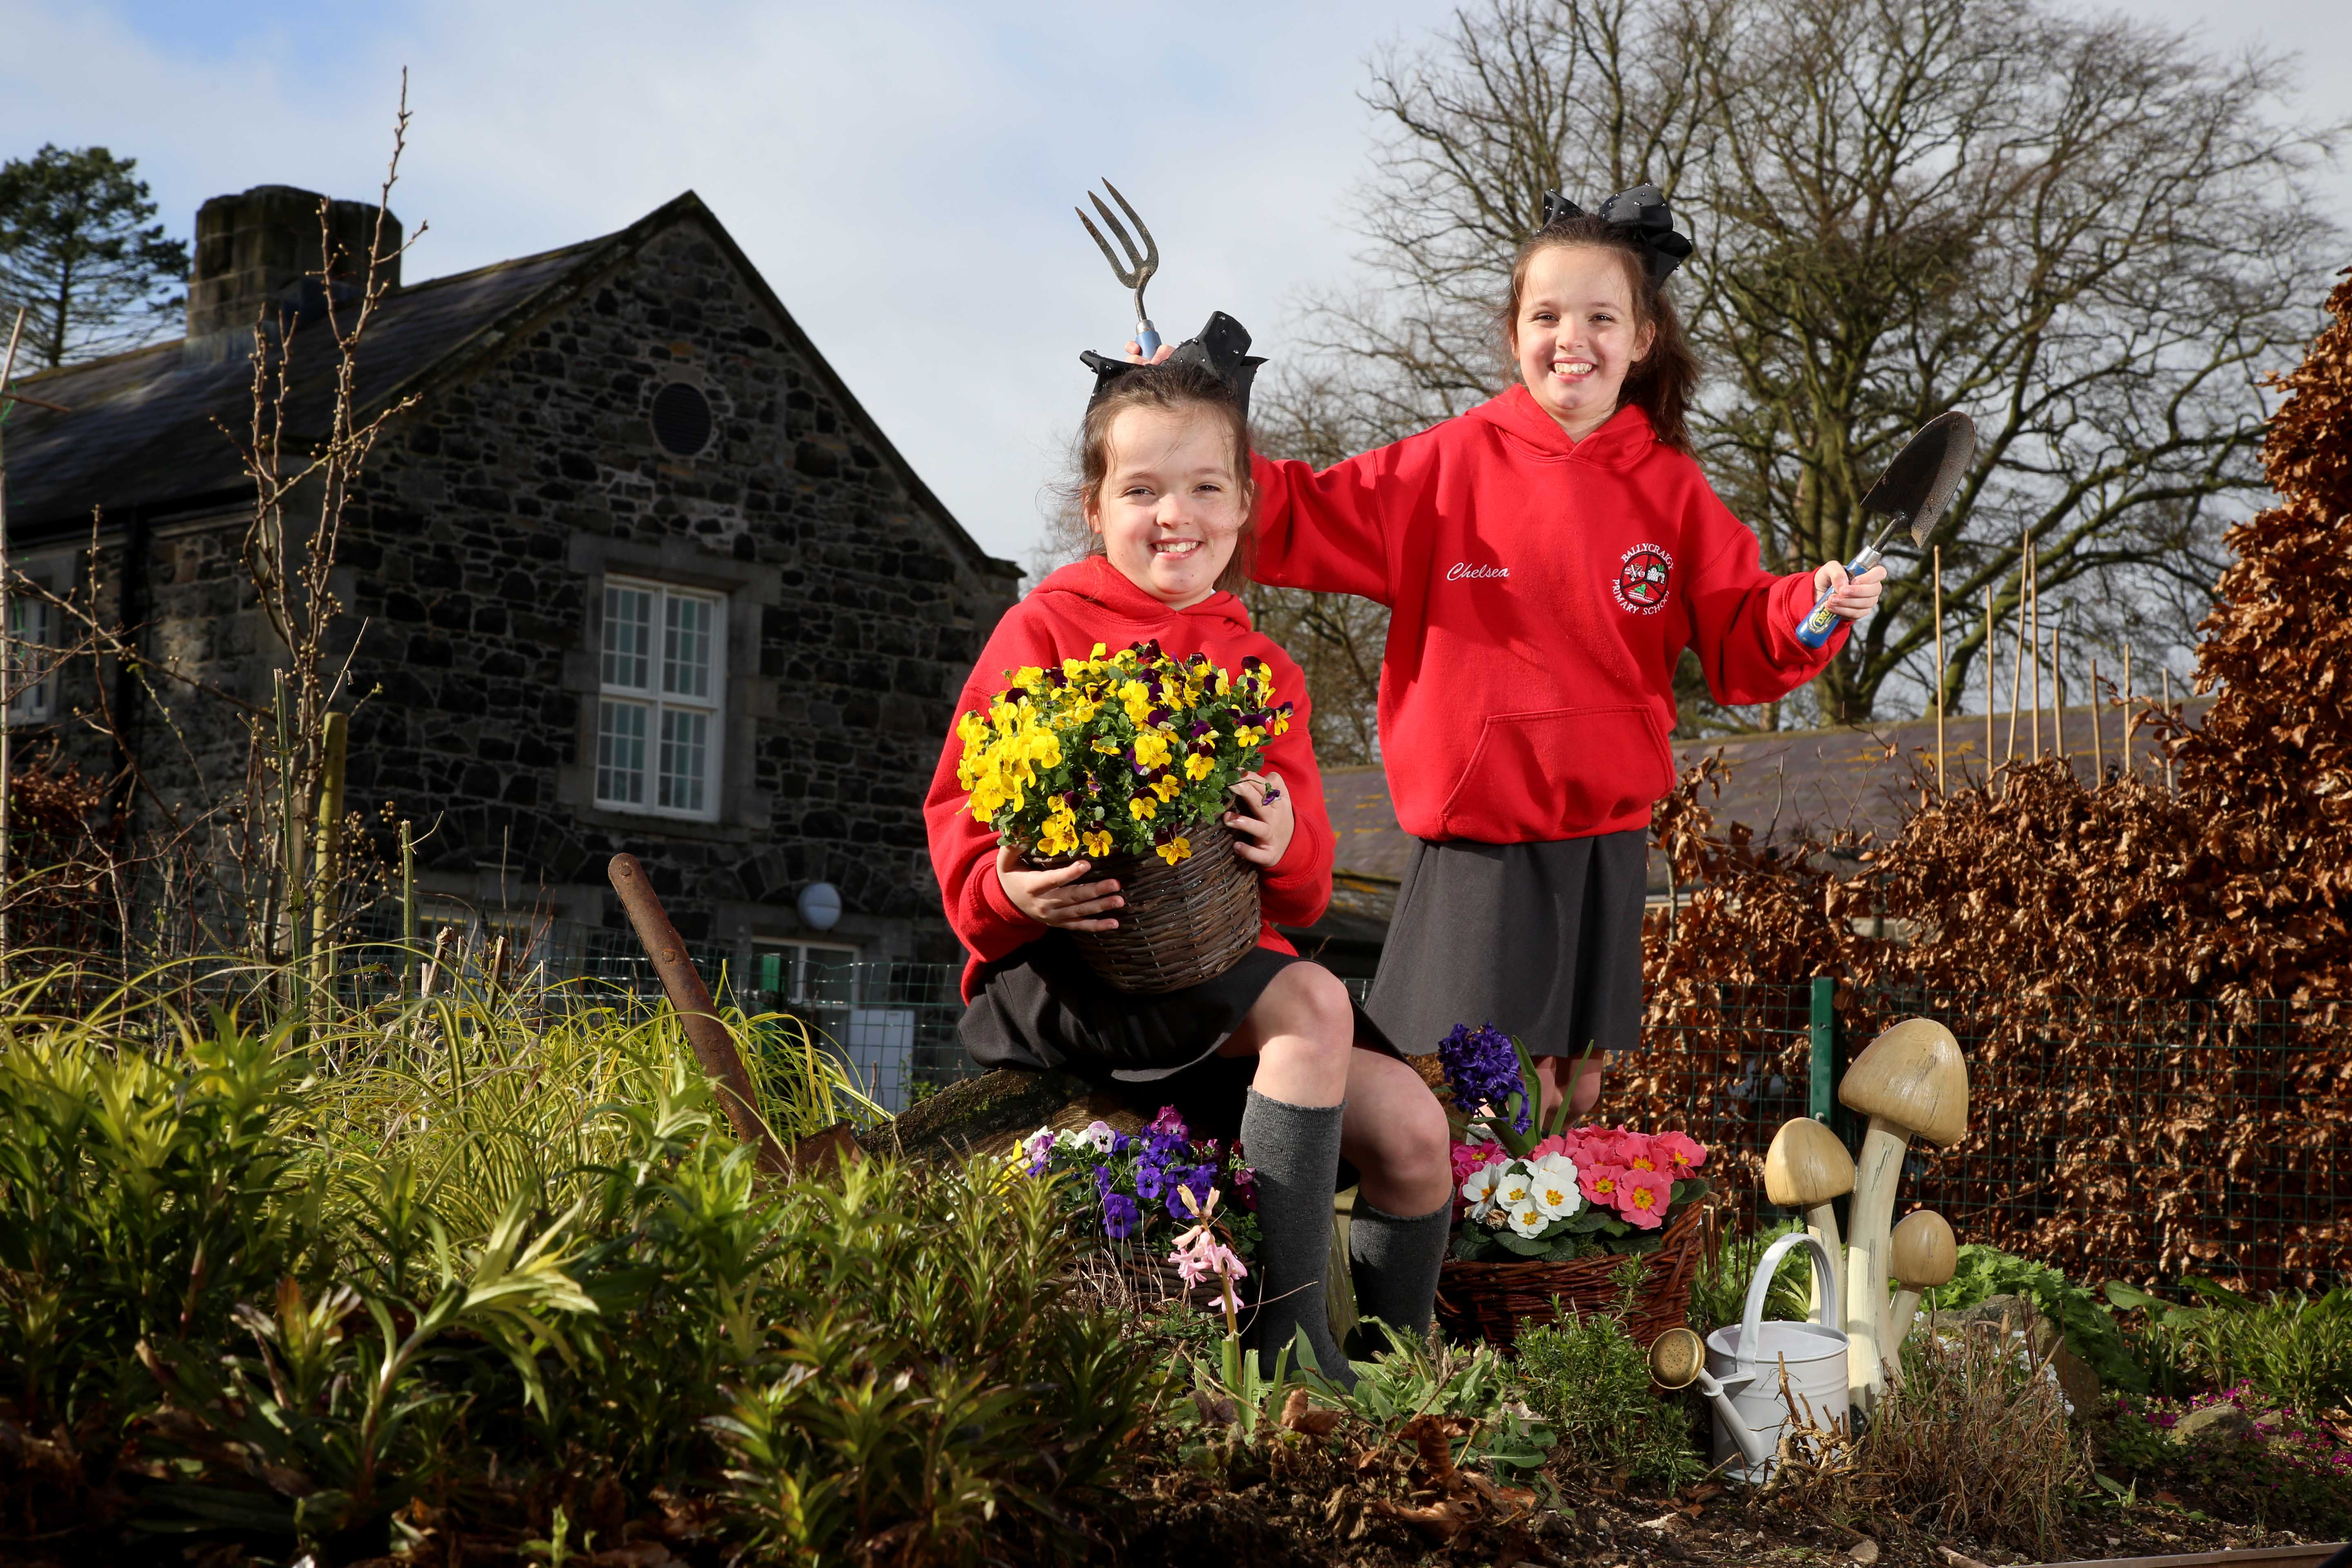 Launch-Twins-from-Ballycraigy-Primary-School_